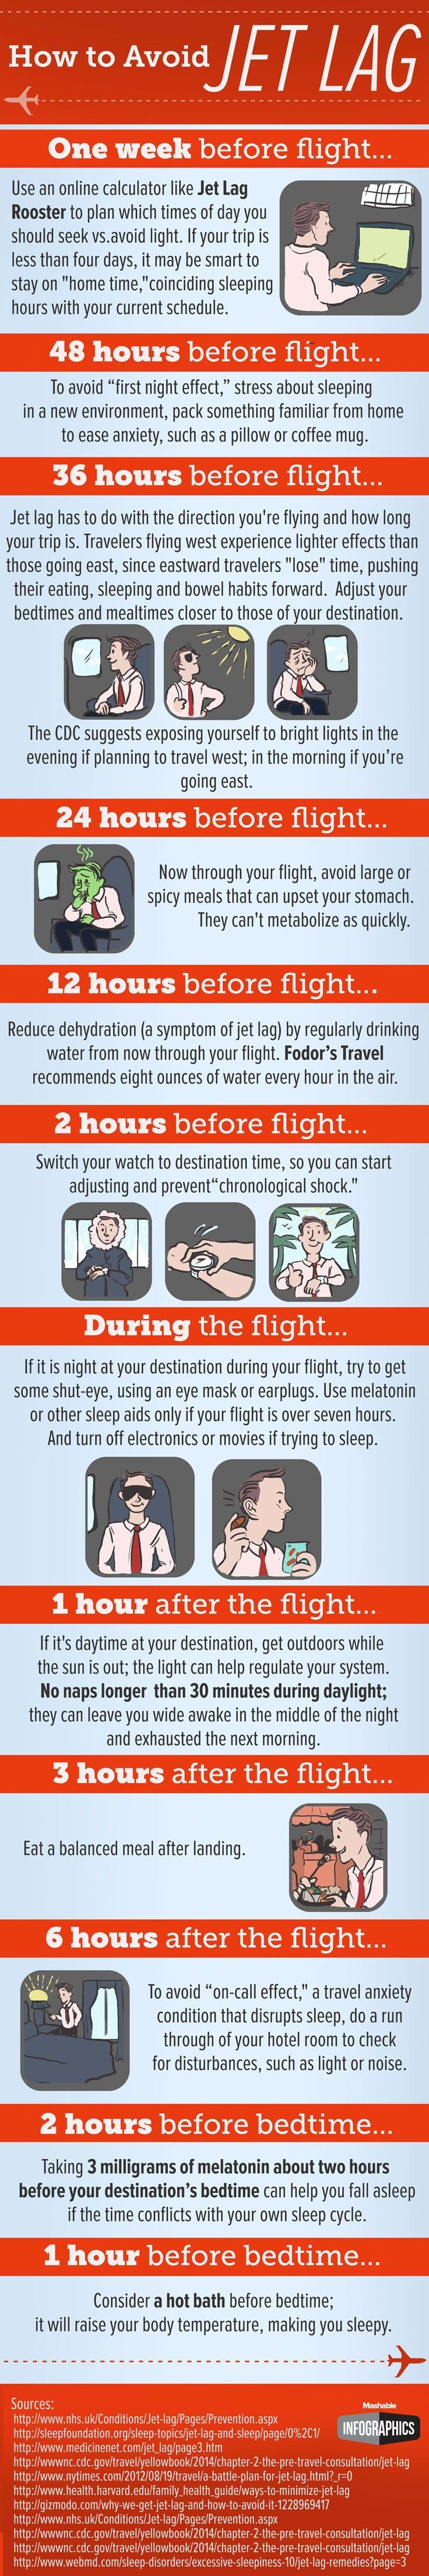 Jet lag can be a downer on an otherwise exciting vacation. Here are some…